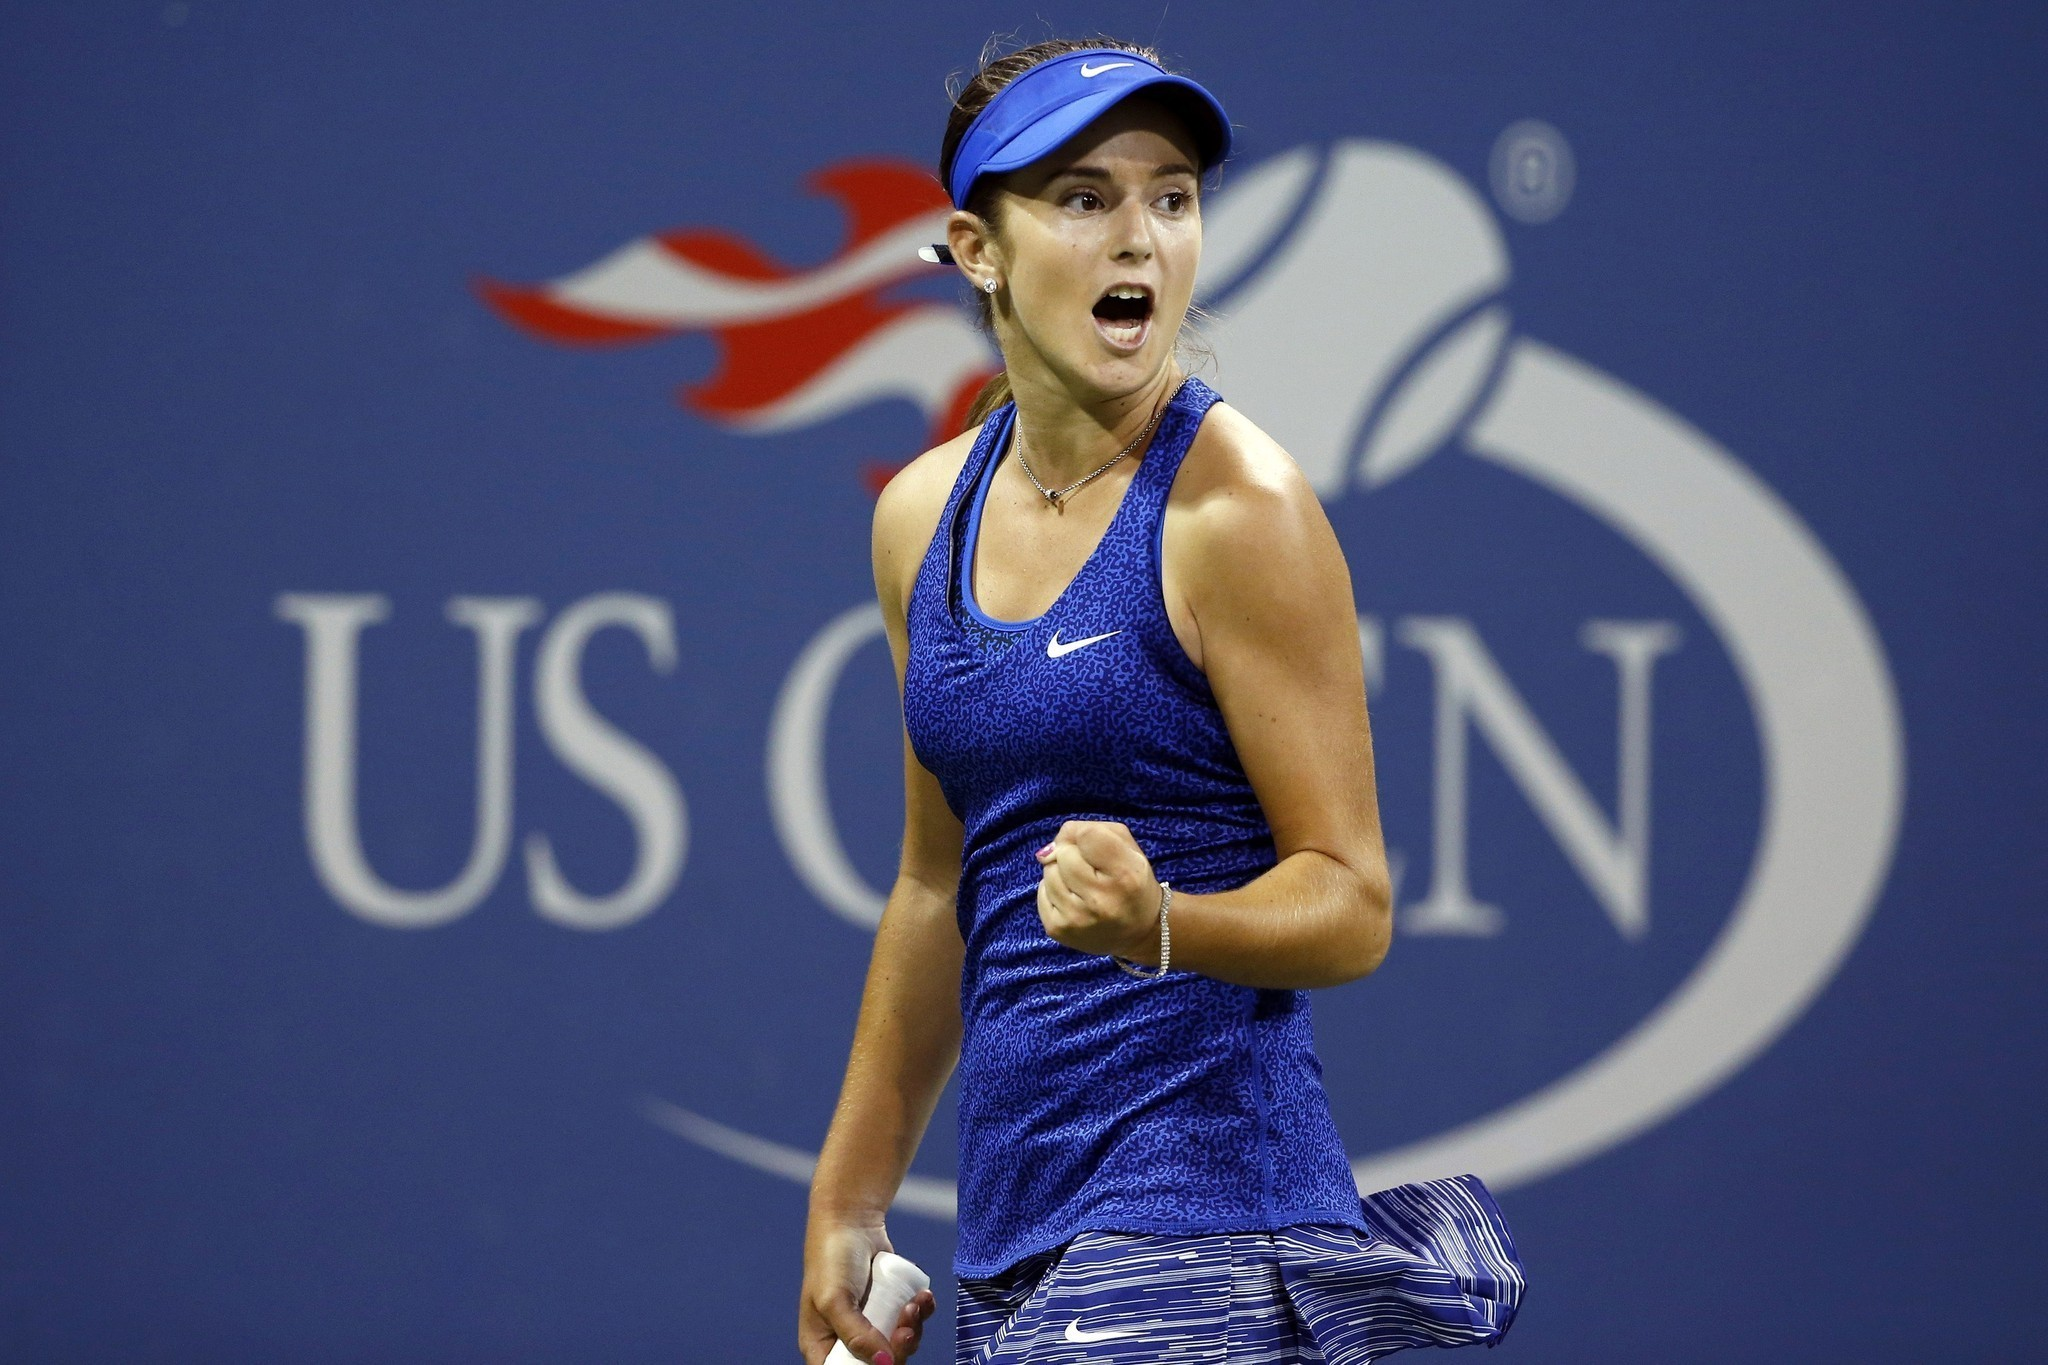 CiCi Bellis' teenage tennis success put in perspective by Pam Shriver